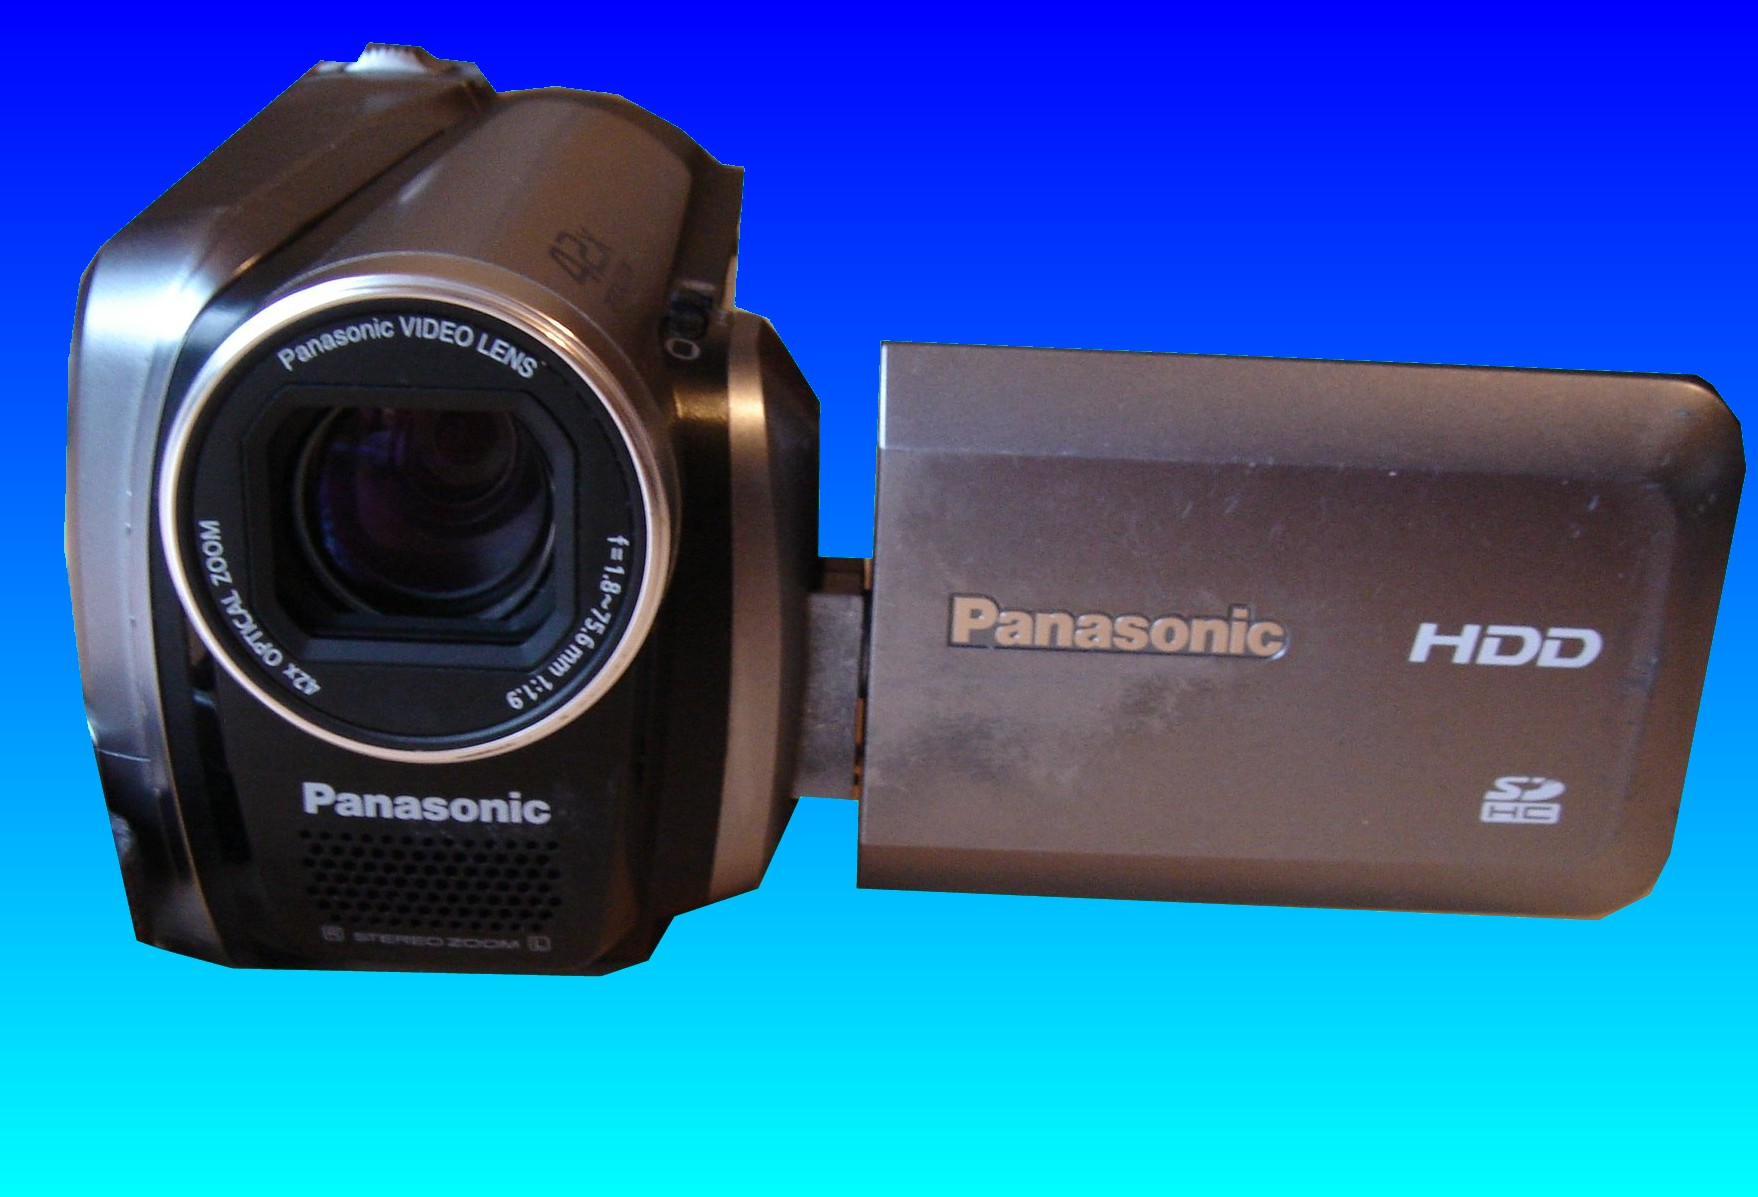 A Panasonic SDR-H40P which had its images deleted by mistake. The images were icons of the various video clips stored on the camcorder's hard drive.